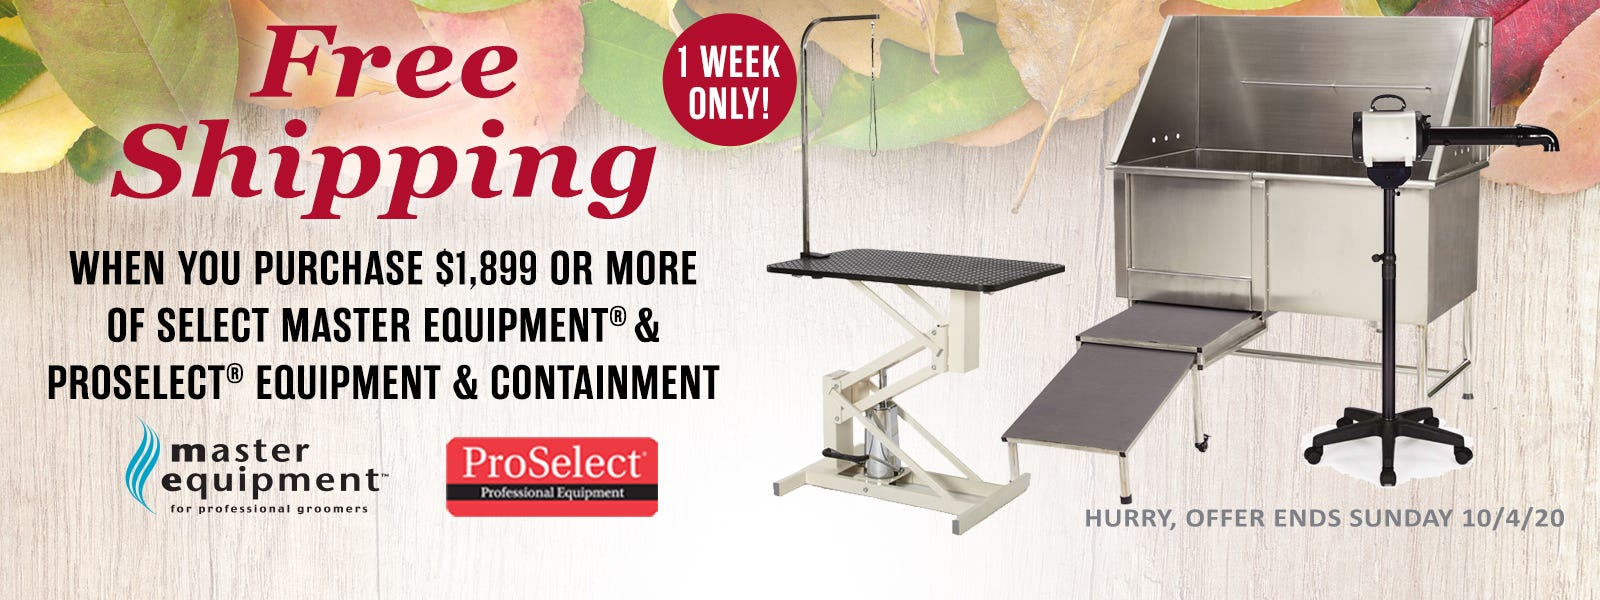 ONE WEEK ONLY! Enjoy FREE shipping on all qualifying orders of $1,899 or more of select Master Equipment and ProSelect equipment and containment items.